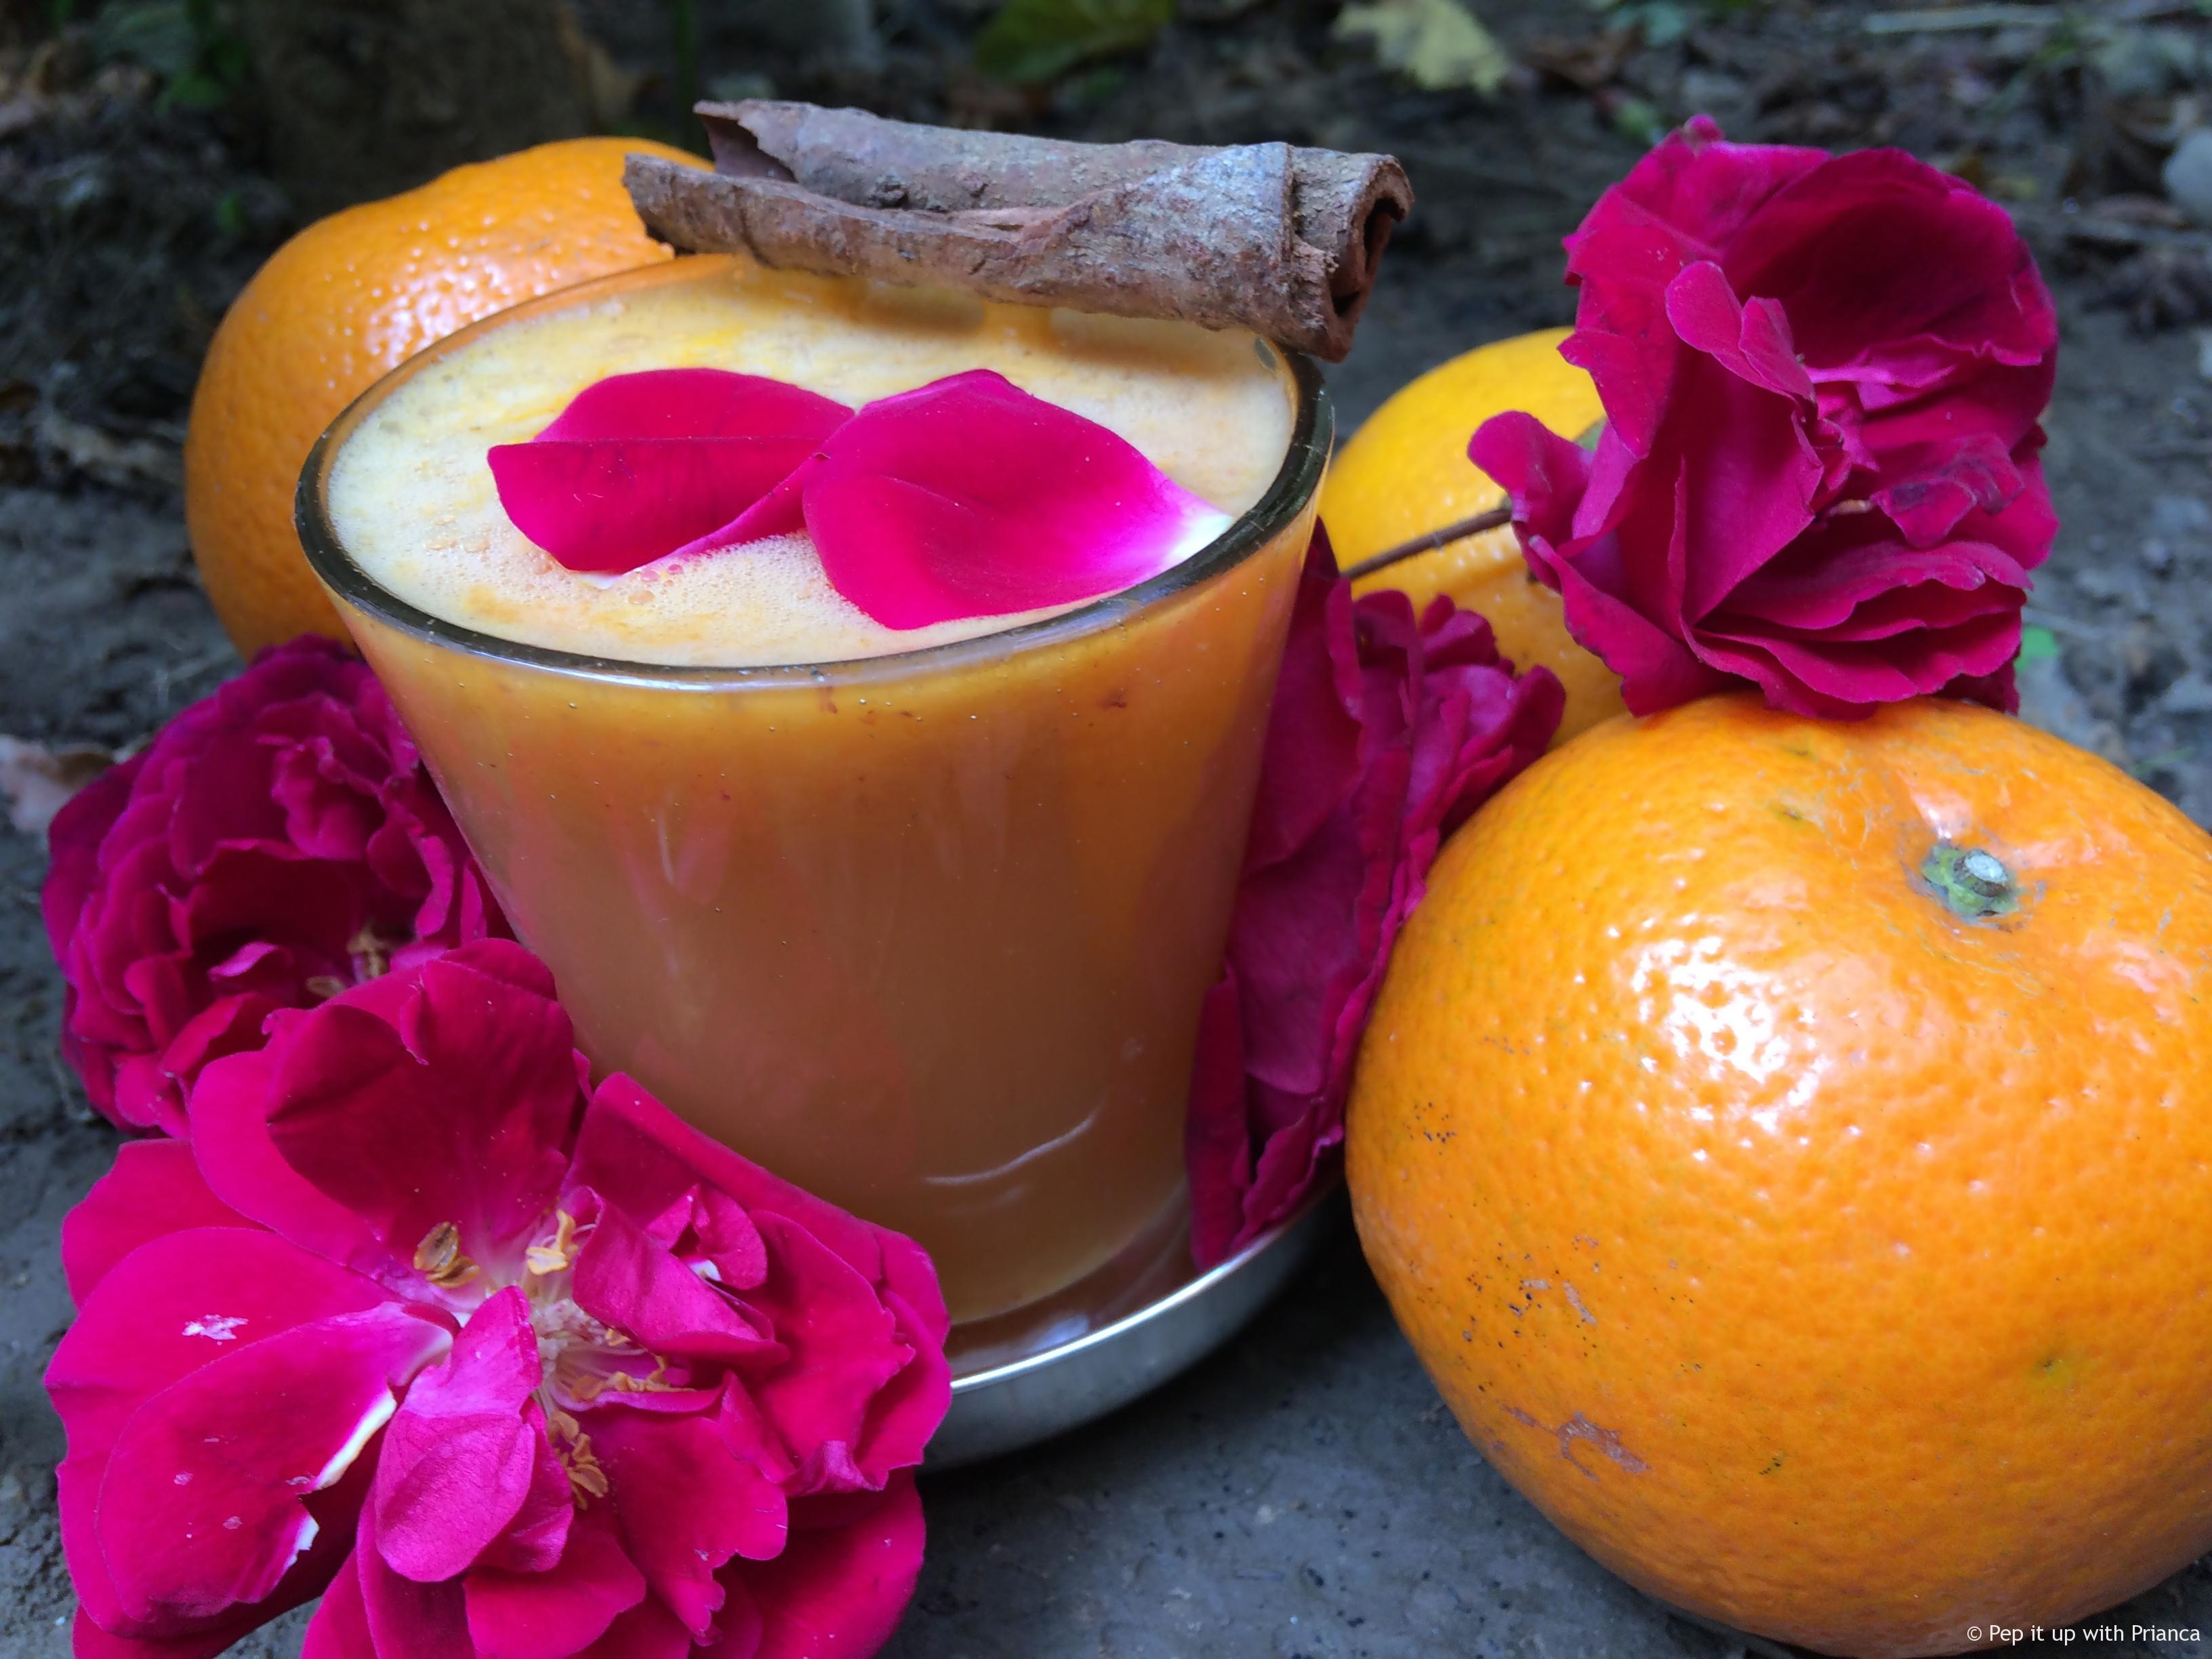 IMG 6438 - Beauty Cleanse, Detox and Instant Energy Juice Recipes - 3 Juice Recipes for a Healthy You!